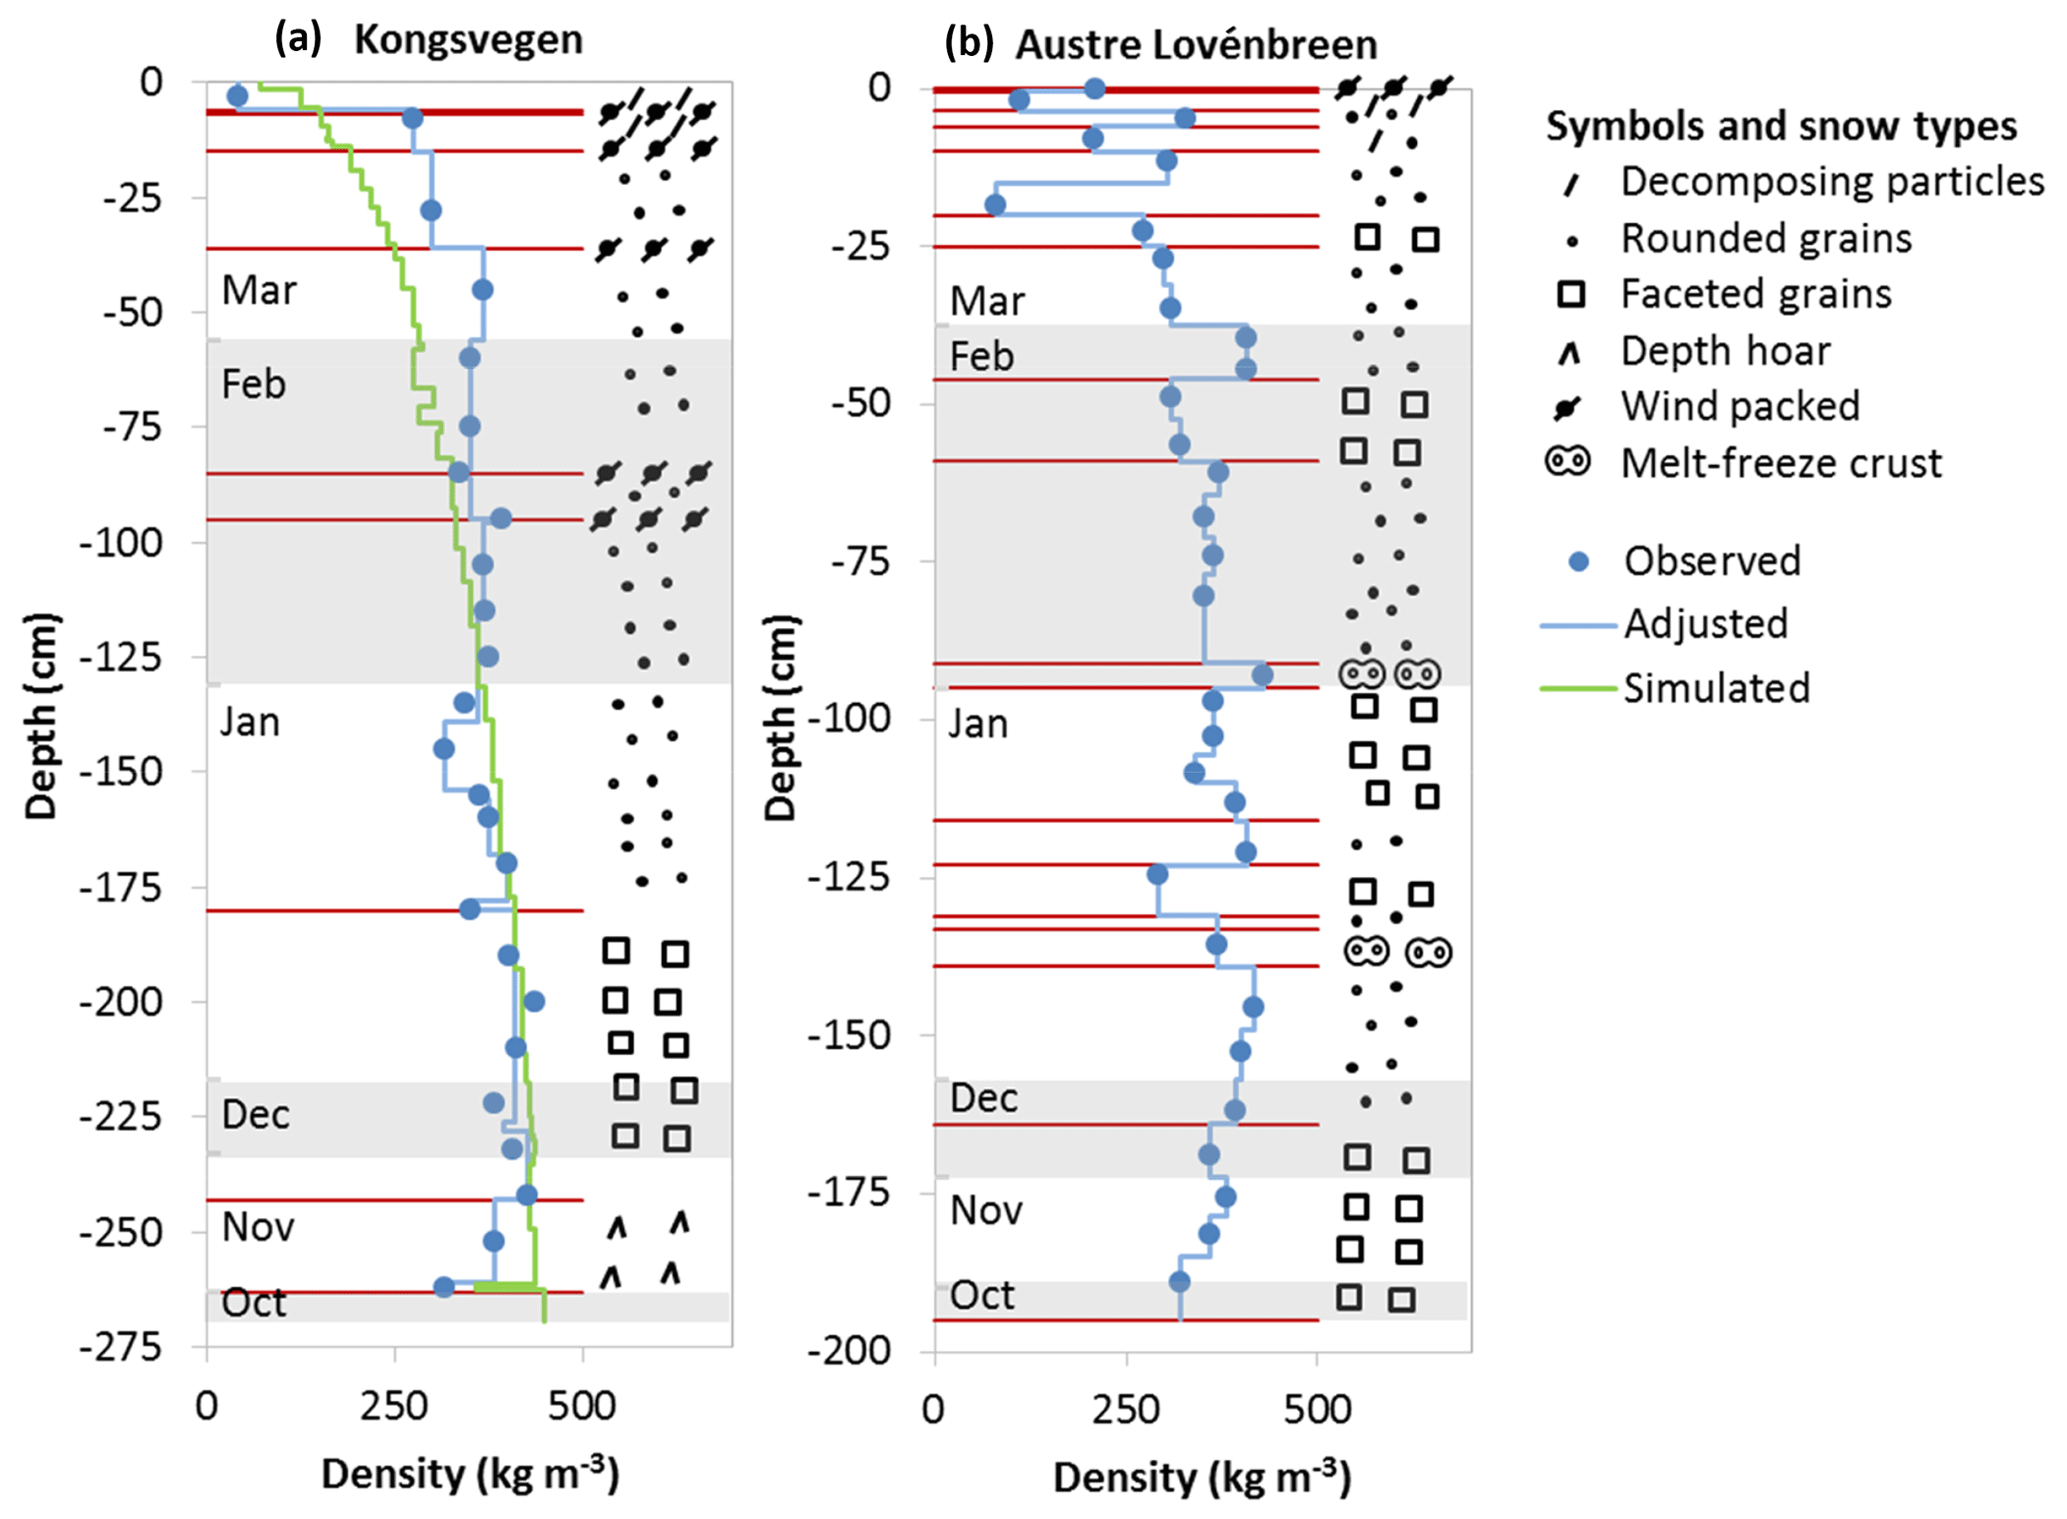 ACP - Deposition of ionic species and black carbon to the